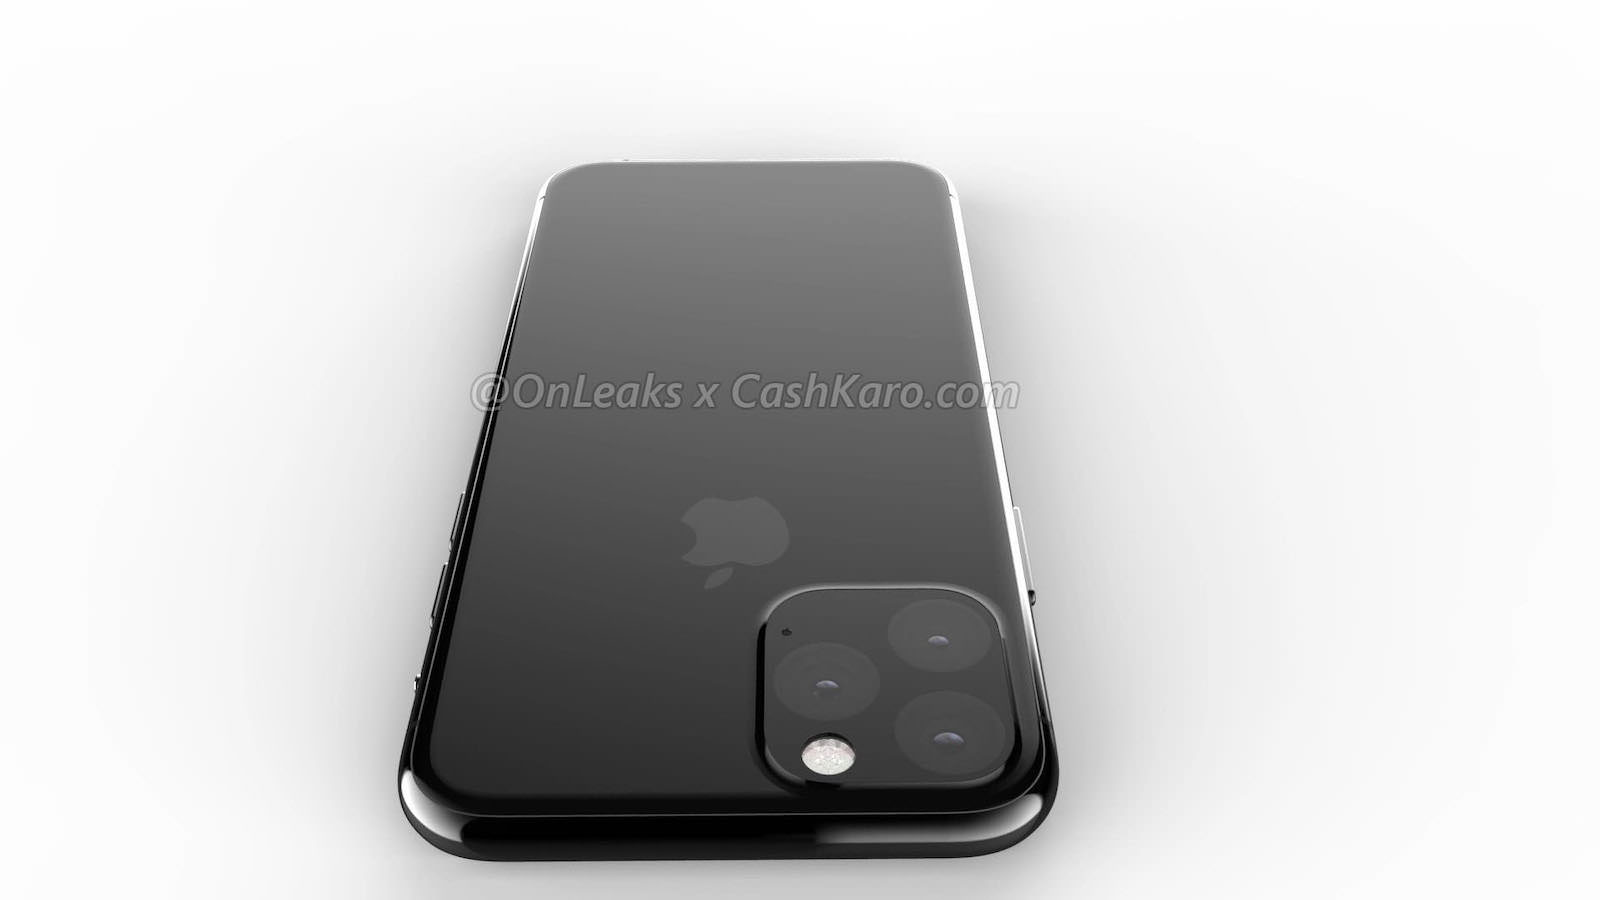 Triple Lens Camera unit for 2019 iphone rendering 2